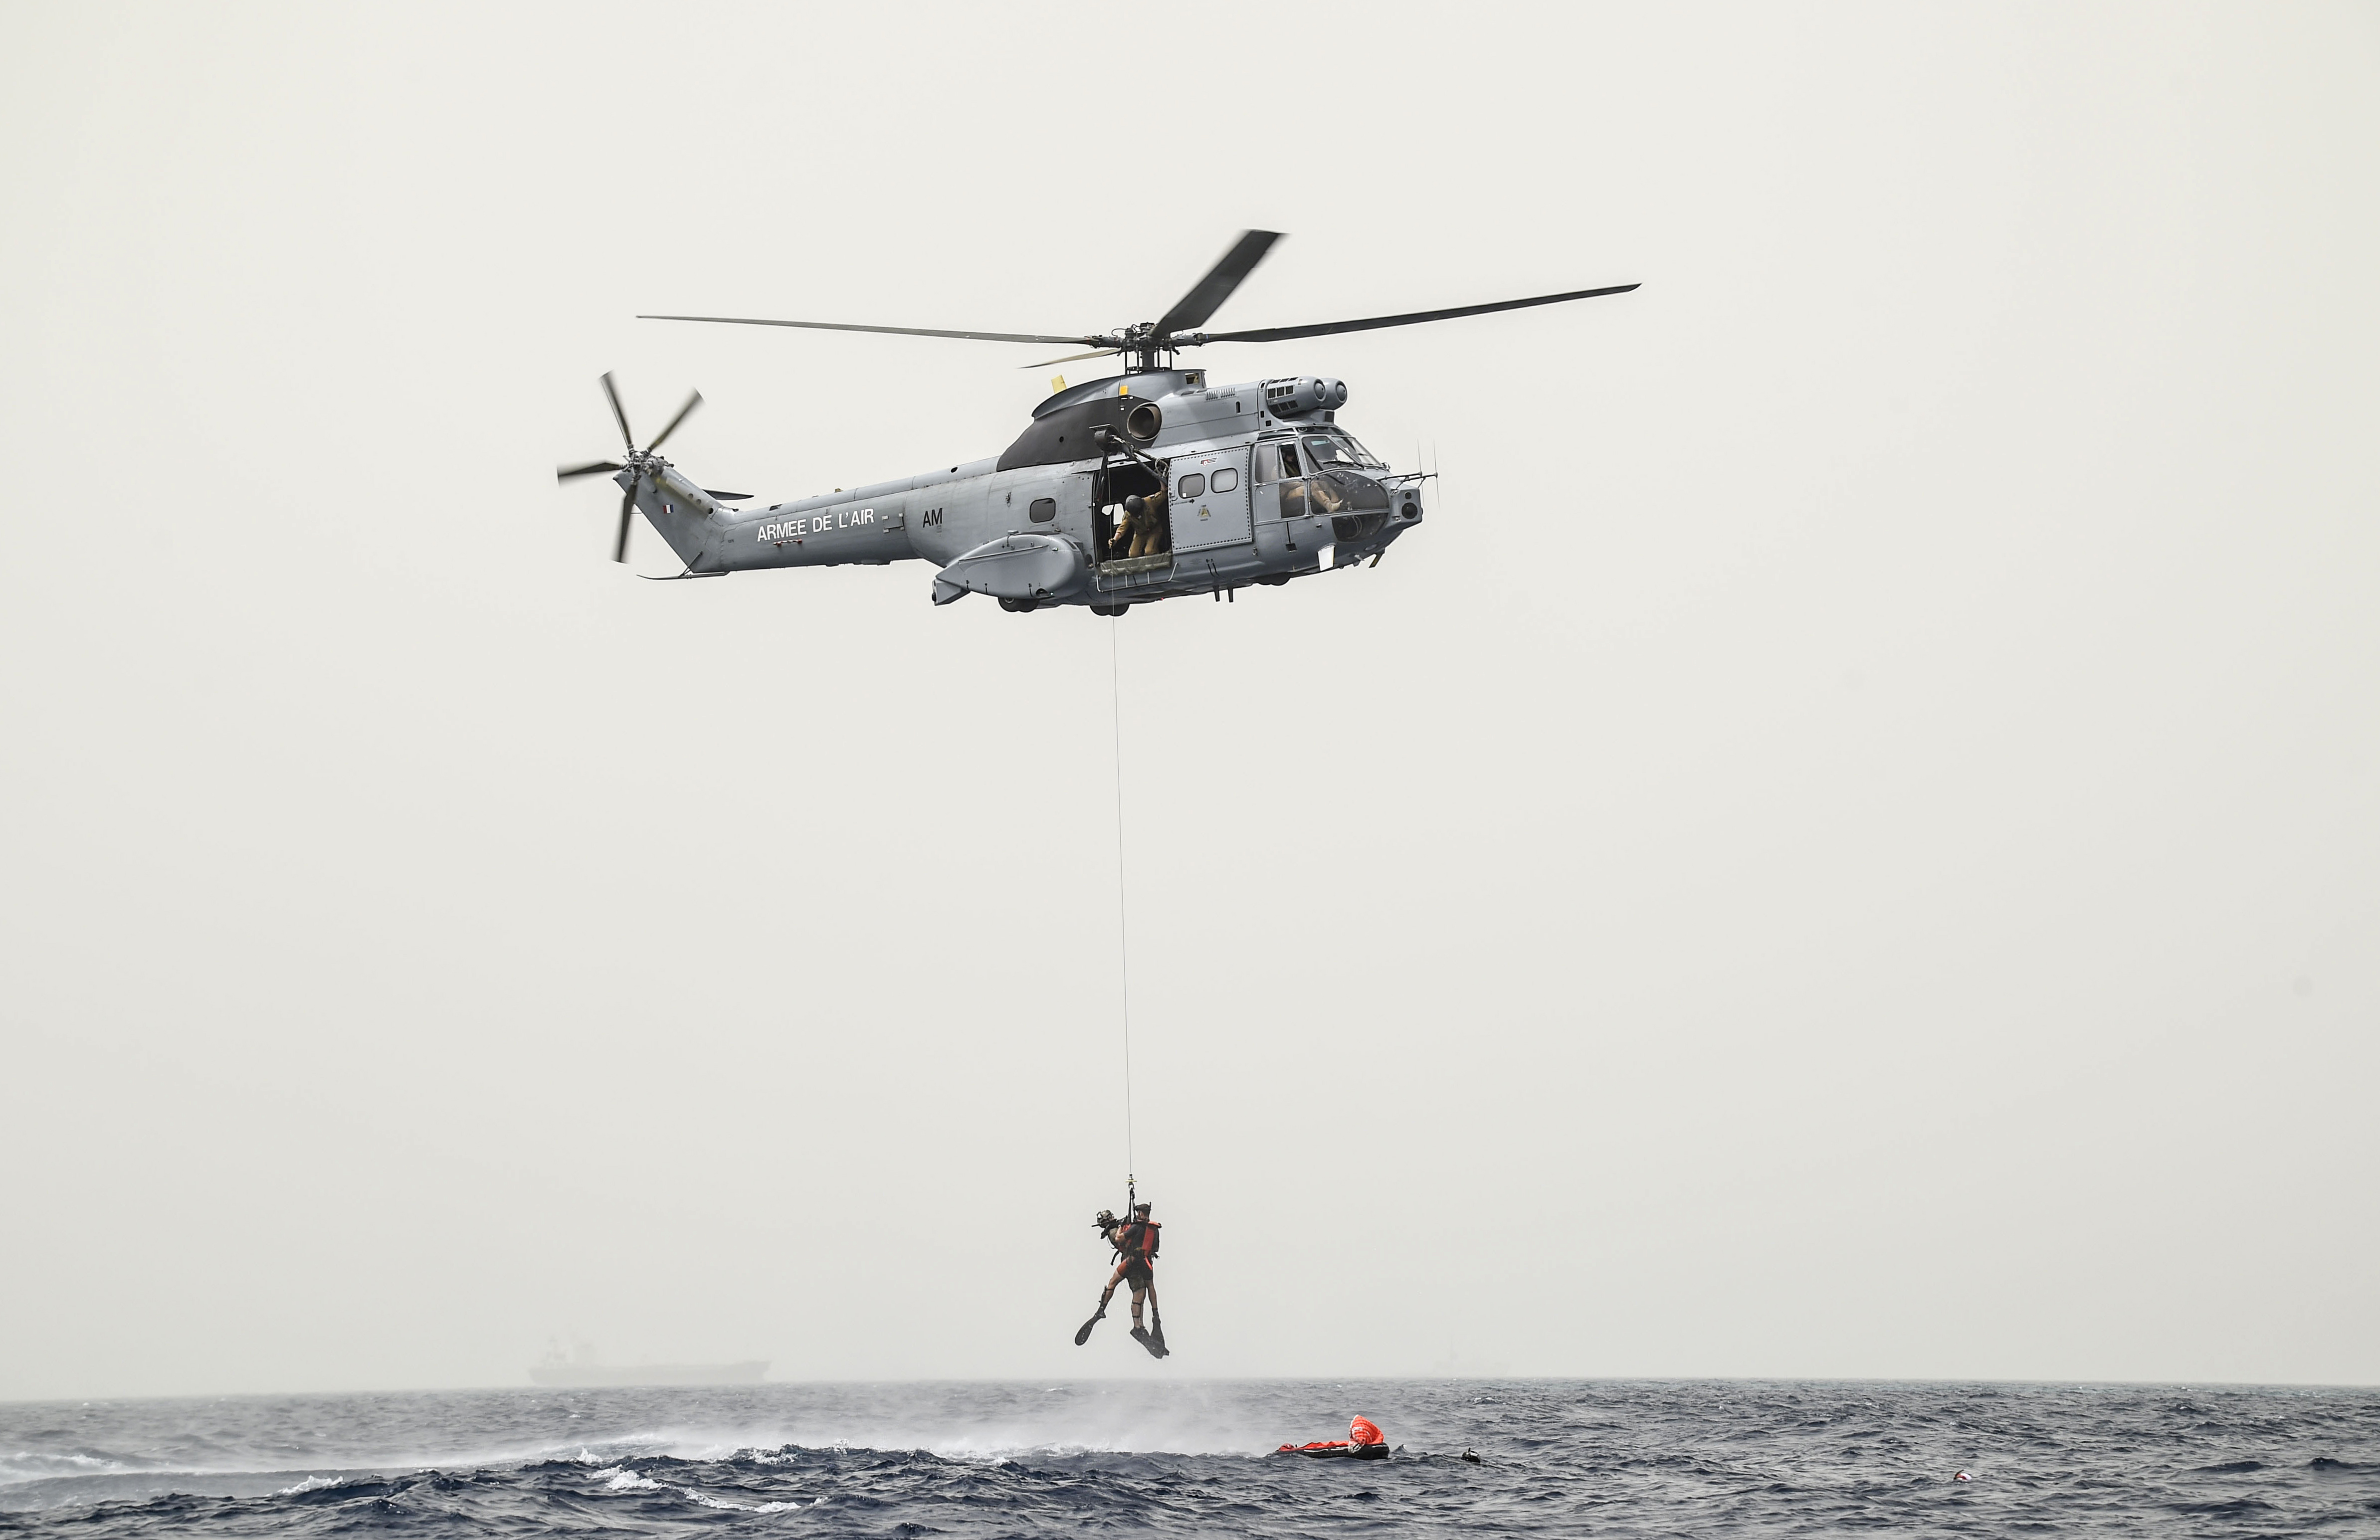 A French Air Force member assigned to the Transport Squadron ET 88 and a U.S. Air Force pararescueman from the 82nd Expeditionary Rescue Squadron, assigned to Combined Joint Task Force-Horn of Africa, are hoisted by a cable to a French Air Force Aérospatiale SA 330 Puma helicopter during a bilateral water operations exercise, in the Gulf of Tadjoura, July 3, 2017. This exercise marked the first bilateral rotary wing water operations exercise between the 82 ERQS and French forces.   (U.S. Air Force photo by Staff Sgt. Eboni Prince)